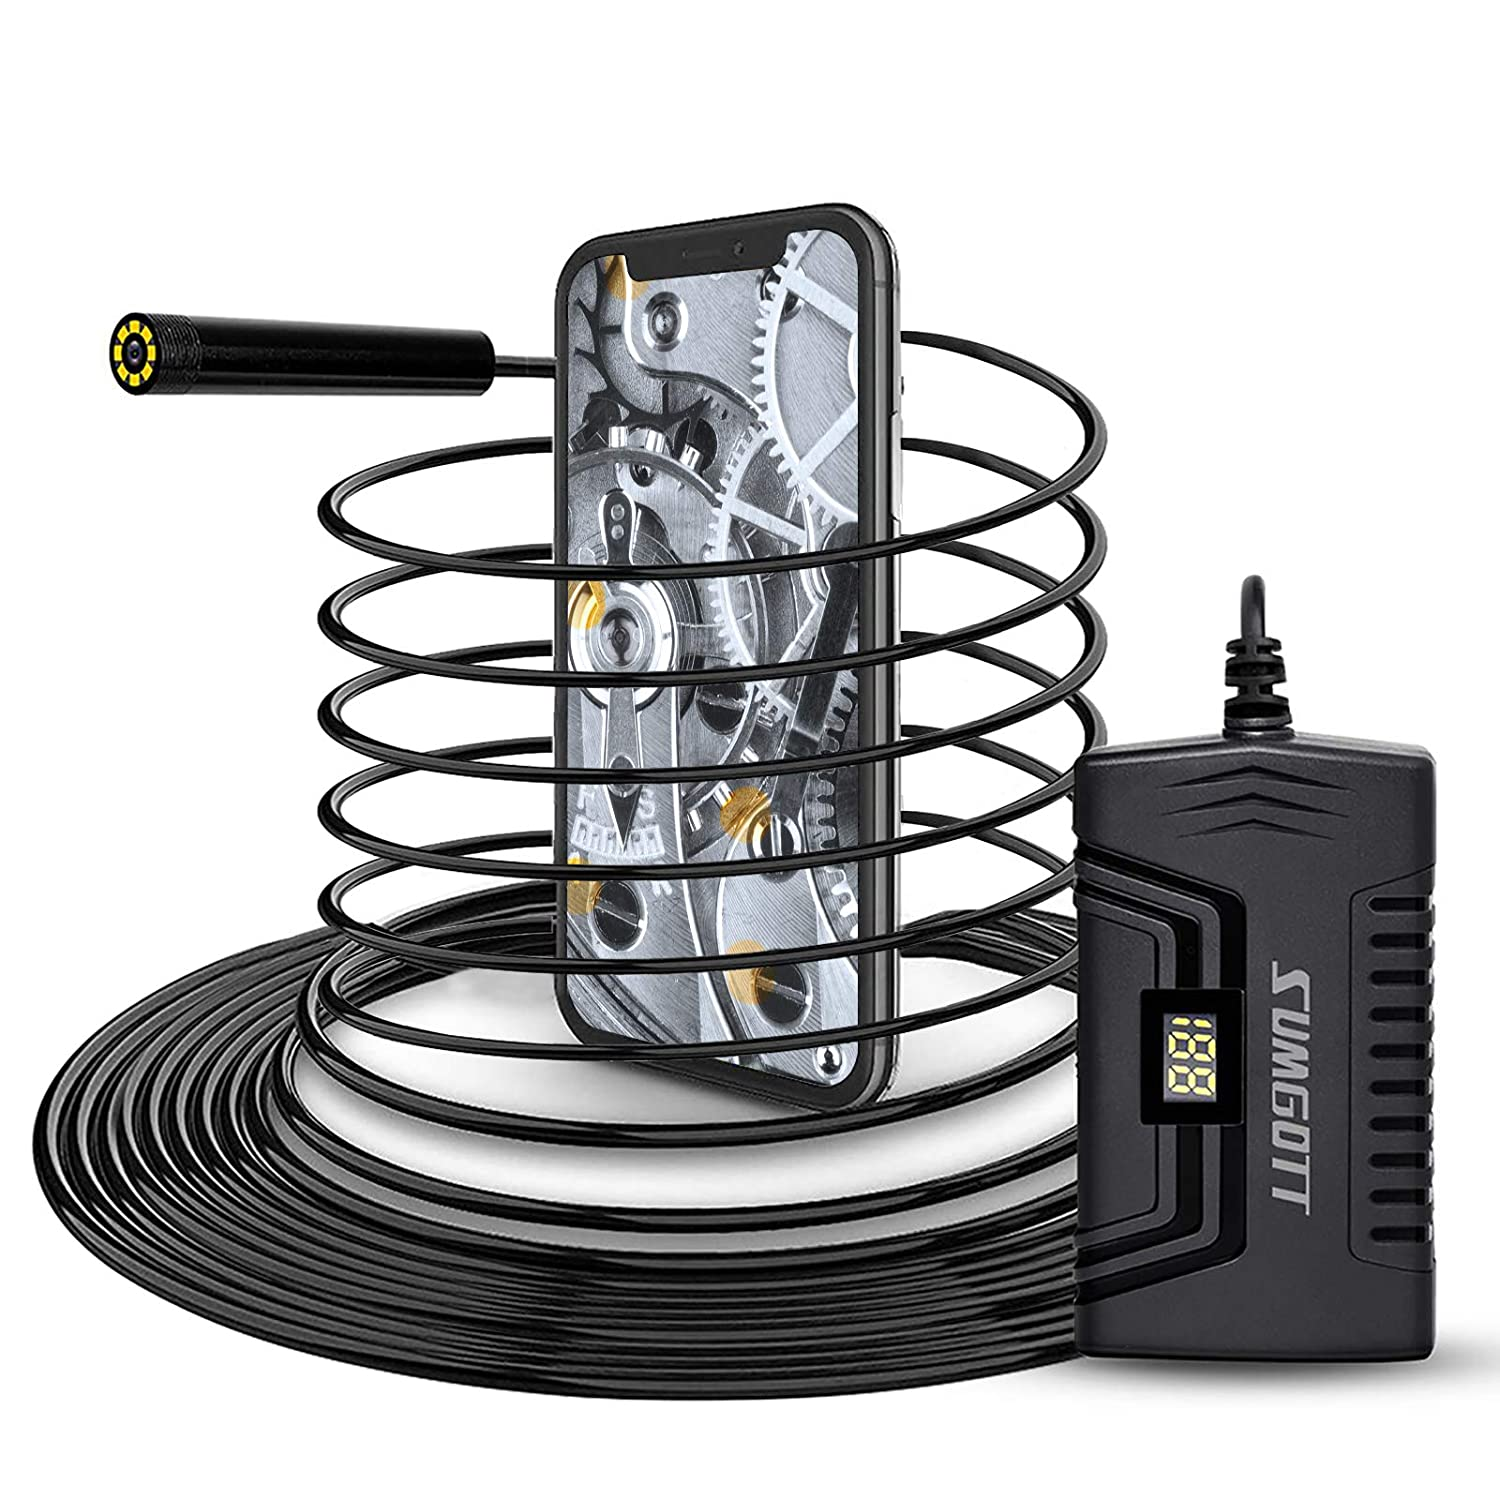 Wireless Endoscope, SUMGOTT WiFi Borescope 2 Megapixels 1080P HD IP68 Waterproof Snake Inspection Camera with 2600 mAh Battery for Android and iOS Smartphone, iPhone, Samsung, Tablet(5M/16.4FT)